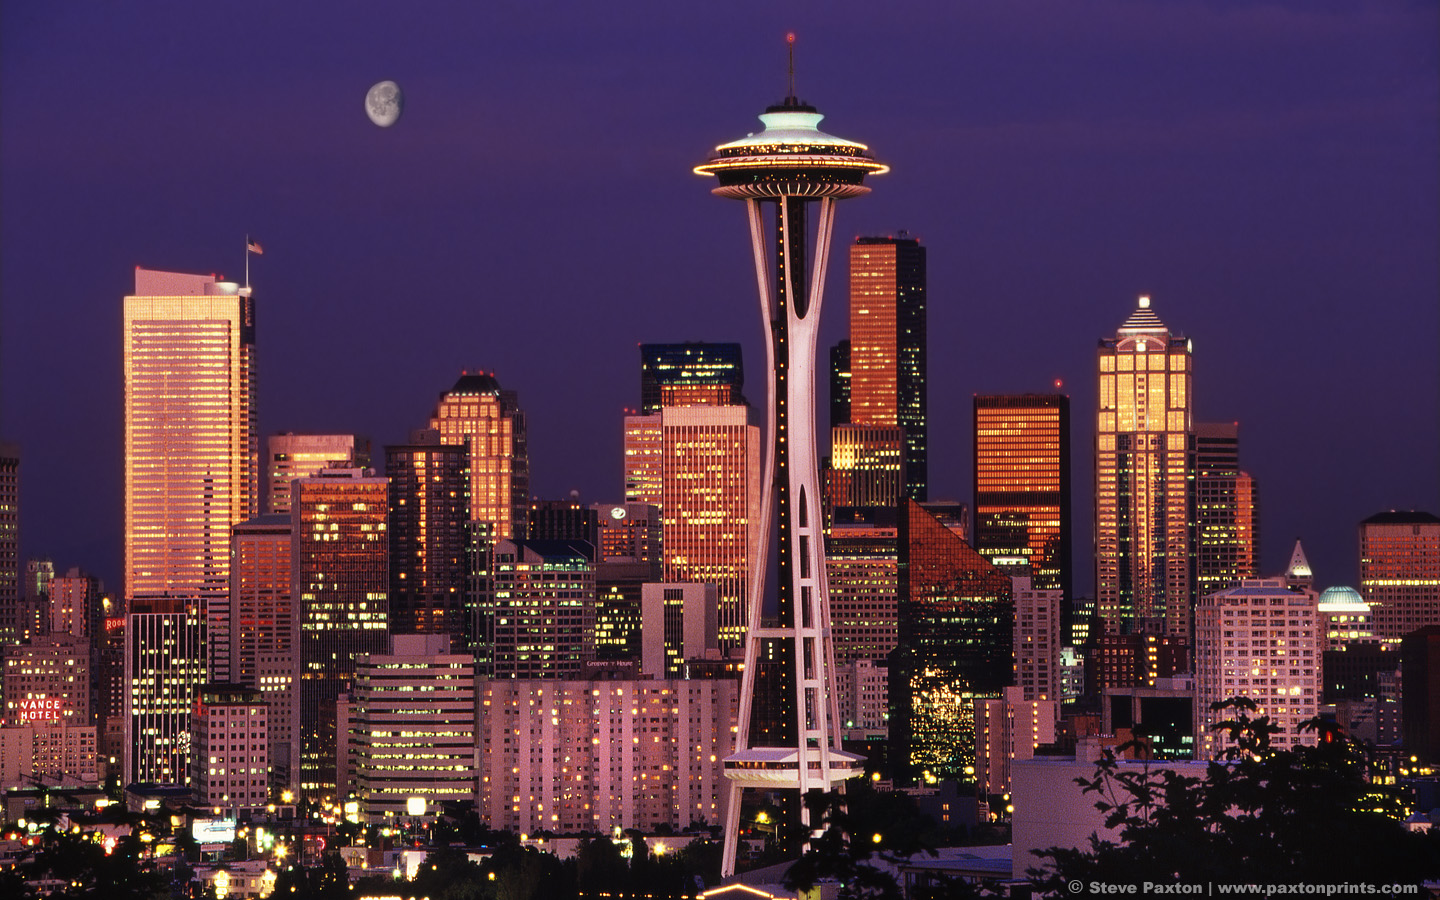 https://i0.wp.com/www.city-data.com/forum/attachments/city-vs-city/46496d1249442398-skyline-competition-san-francisco-vs-seattle-moon_over_seattle_1440x900.jpg